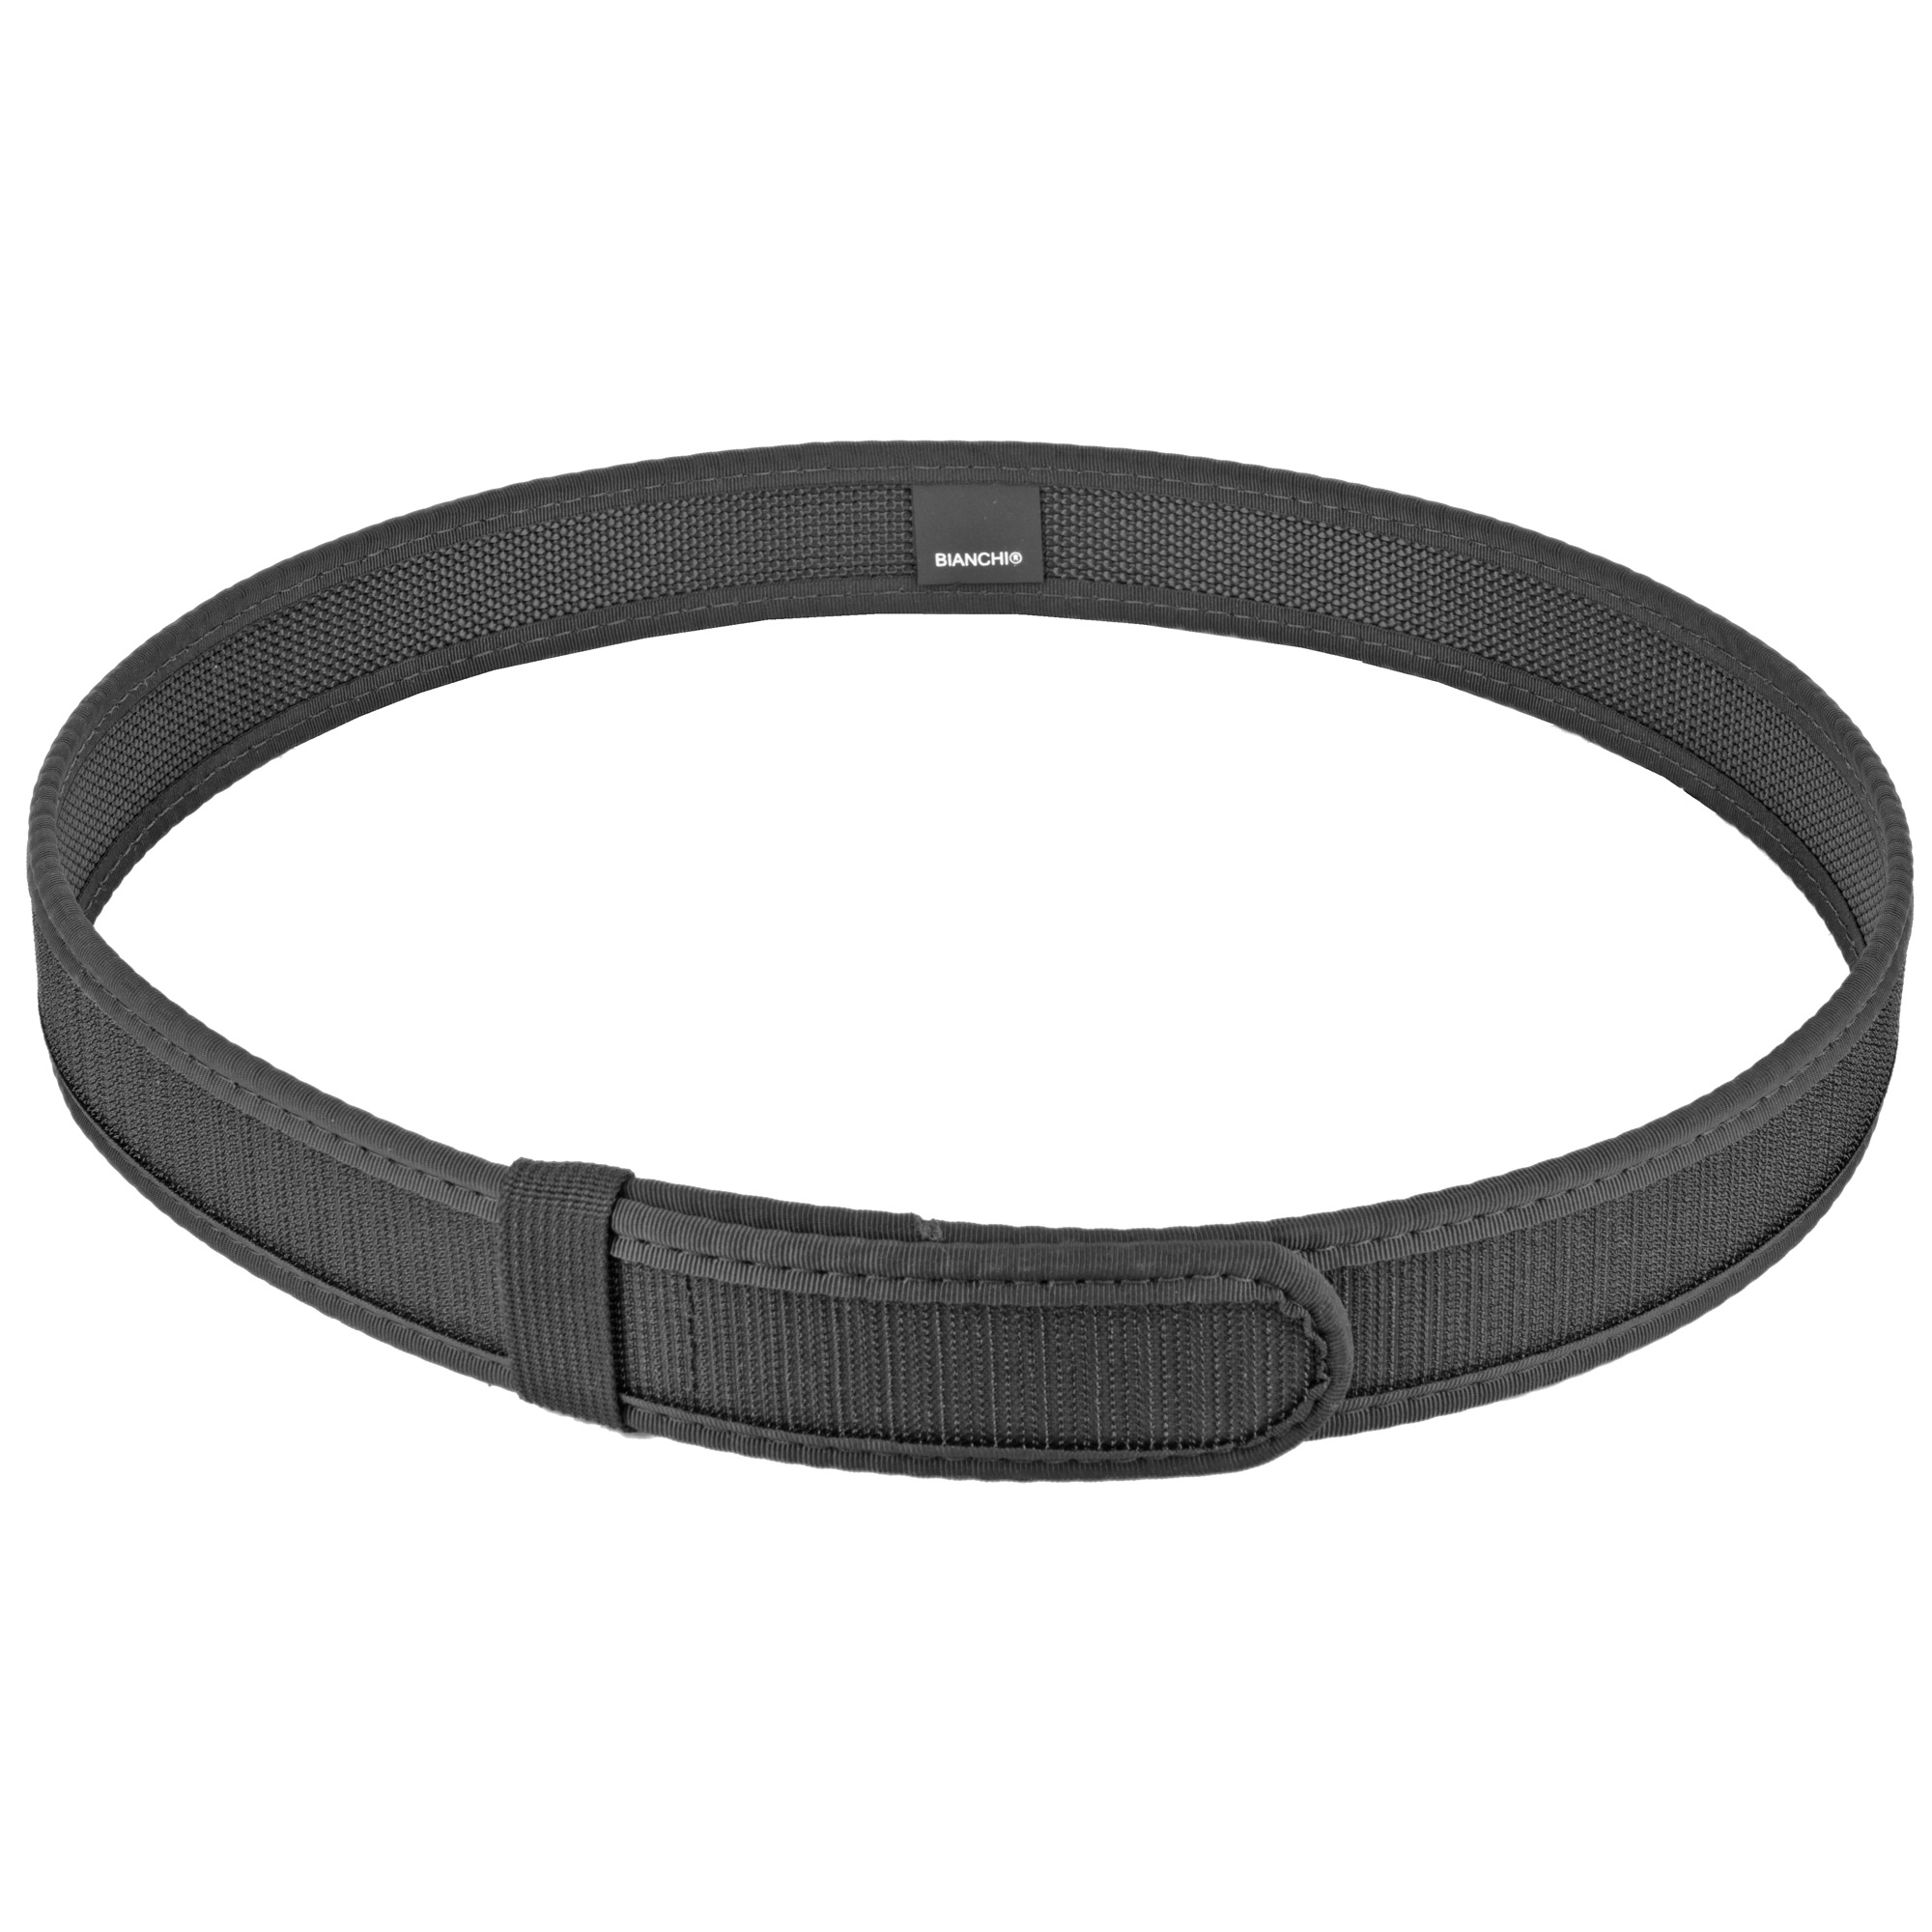 """The Model 7205 Liner Belt features a durable nylon web construction with full-length hook lining. It has a hook and loop closure for quick on/off ease and is 1.5"""" (38 mm) wide."""